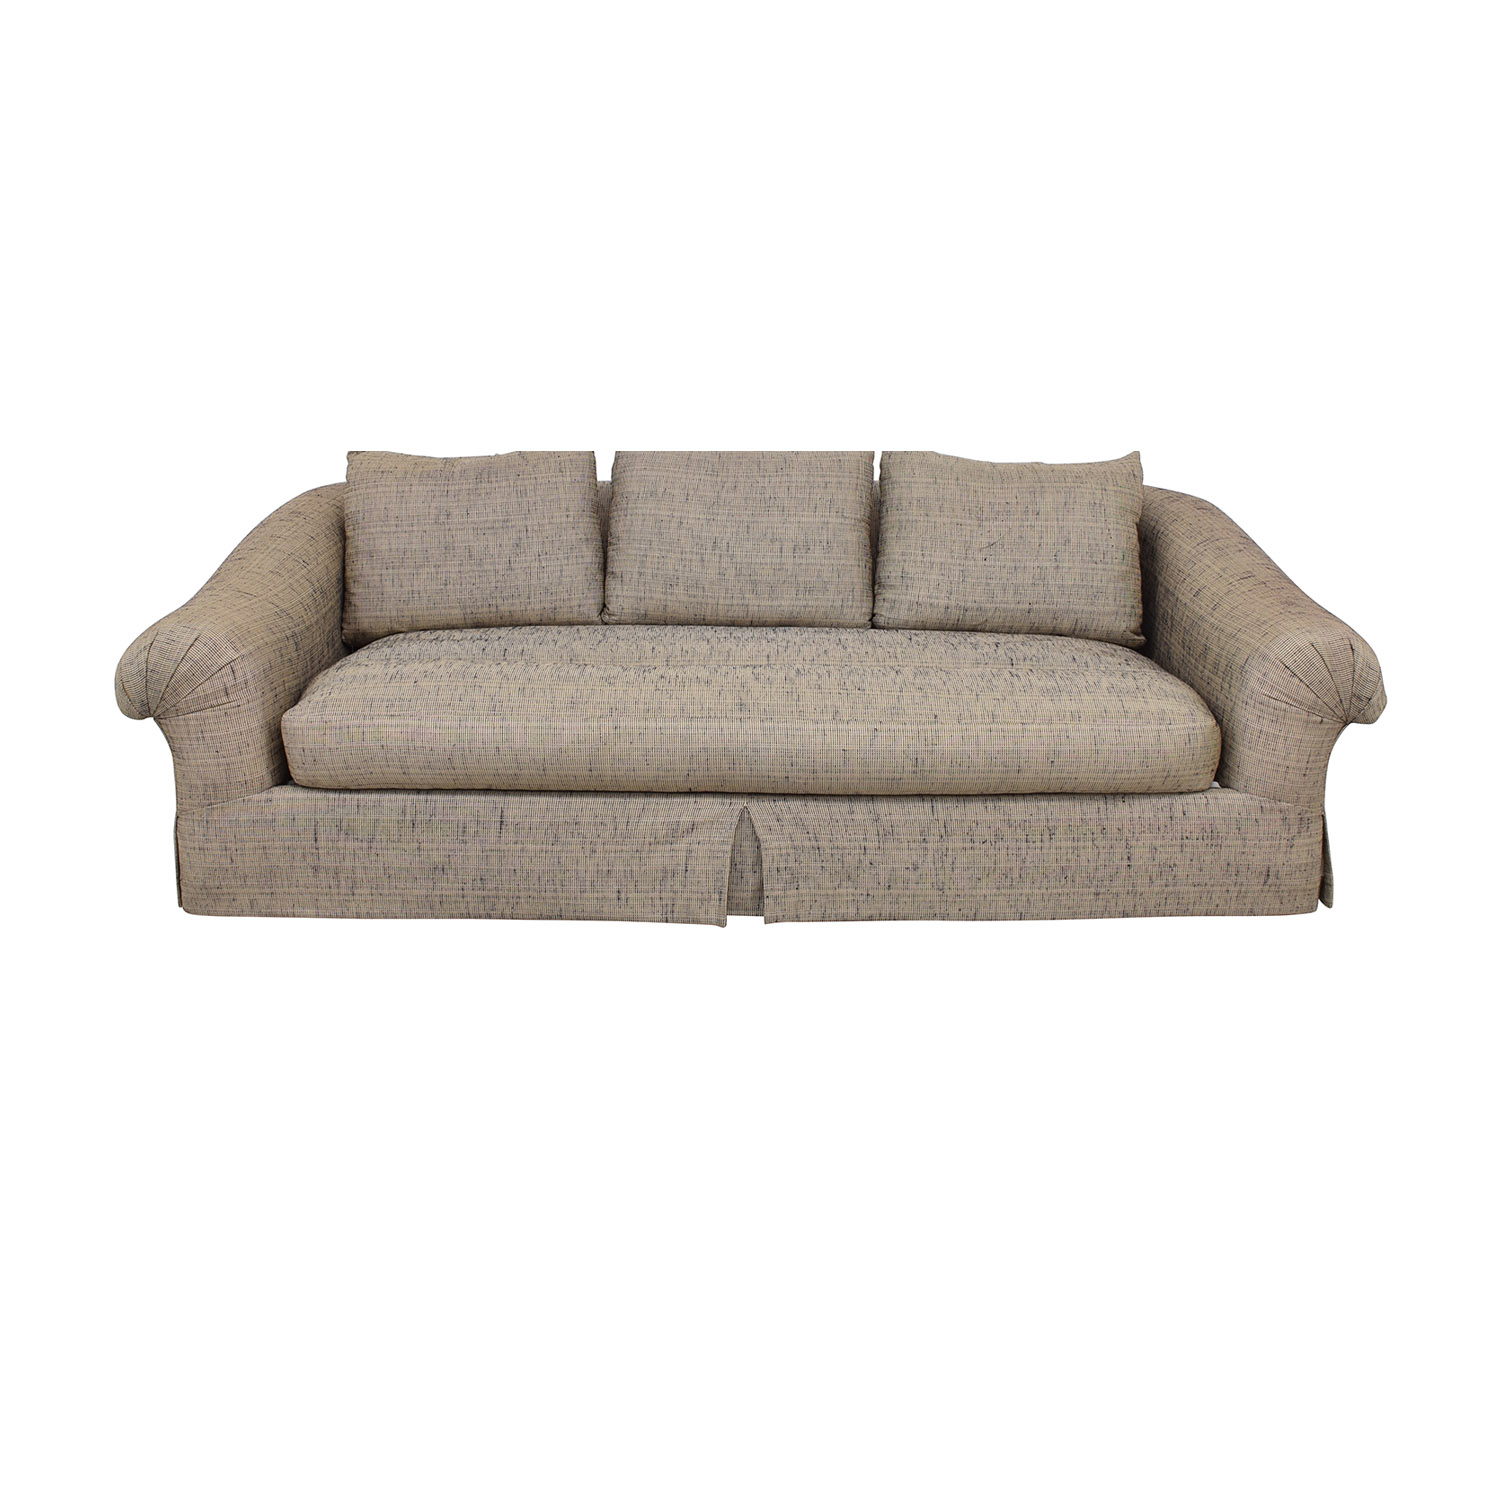 Bernhardt Bernhardt Flair Collection Single Cushion Sofa on sale